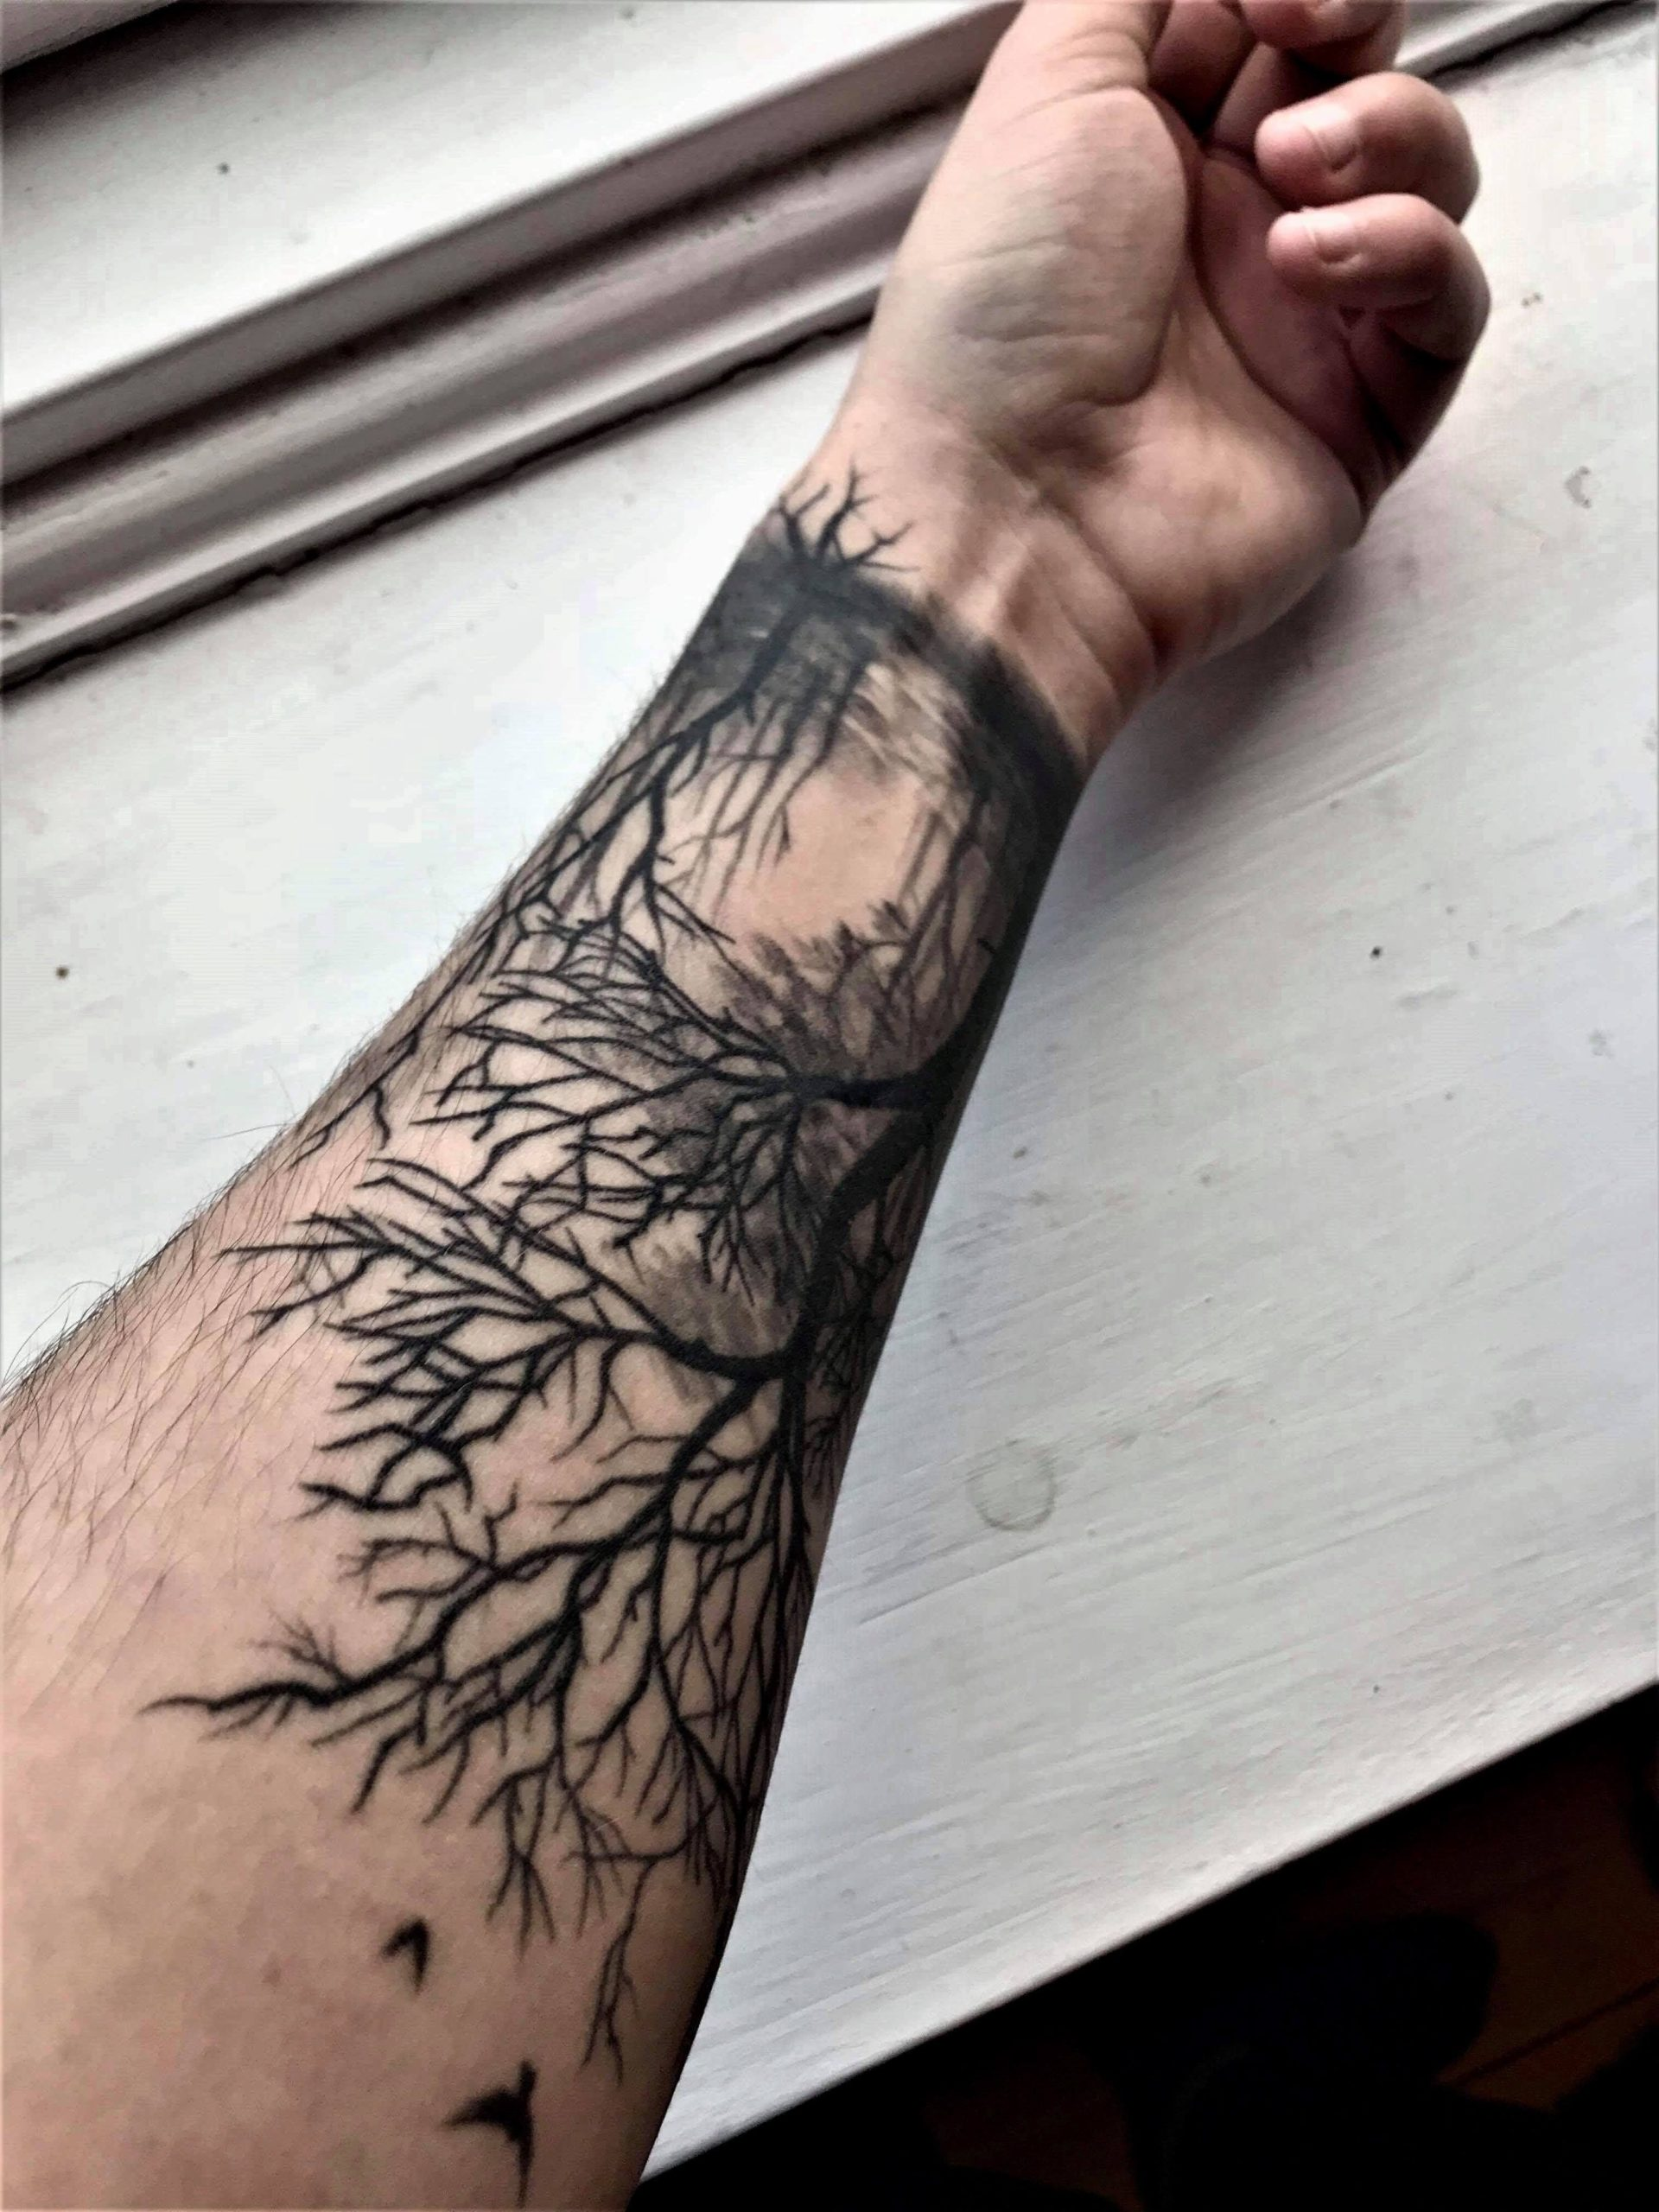 Tattoo arbre exceptionnel.